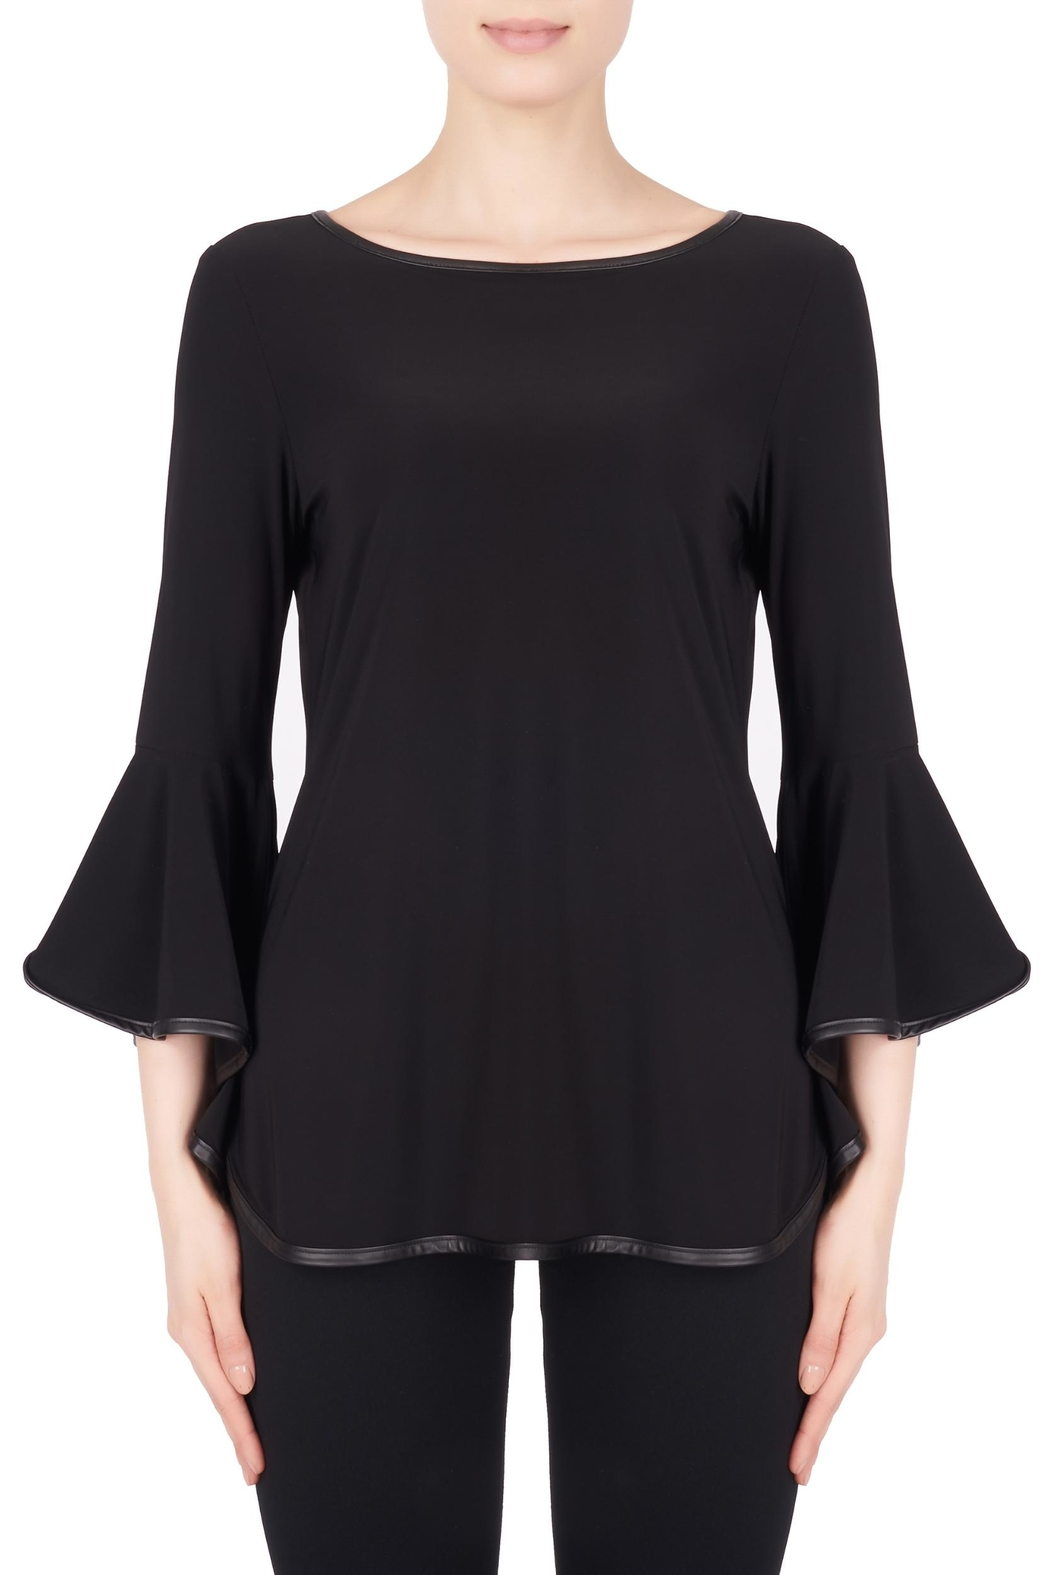 Joseph Ribkoff Leatherette Trim Top - Main Image